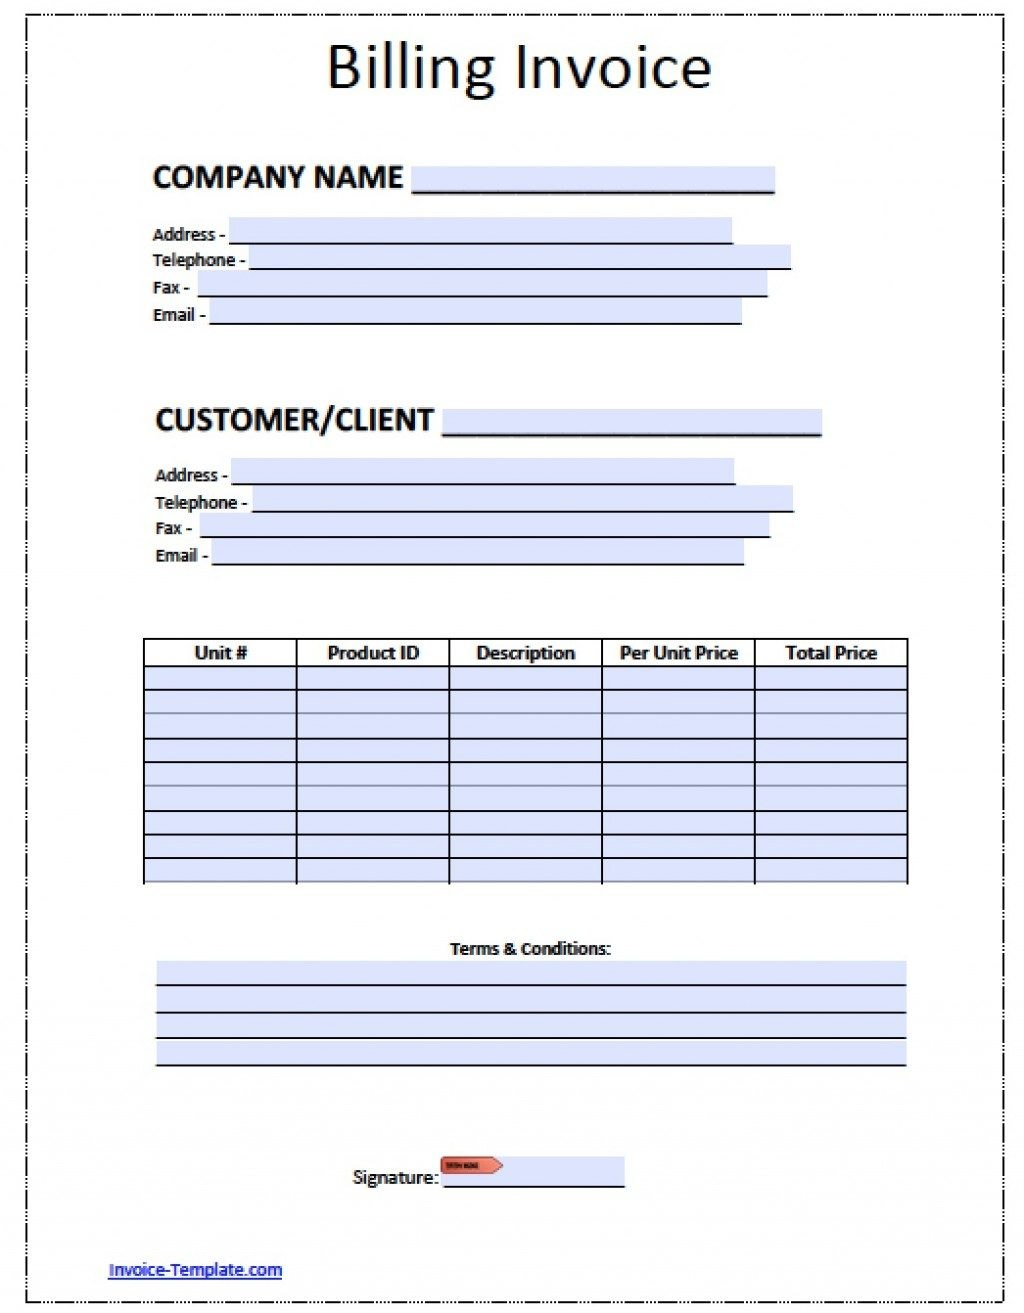 Blank Bill Template Ee Printable Invoice Templates Excel Utility Uk Regarding Free Bill Invoice Template Printable